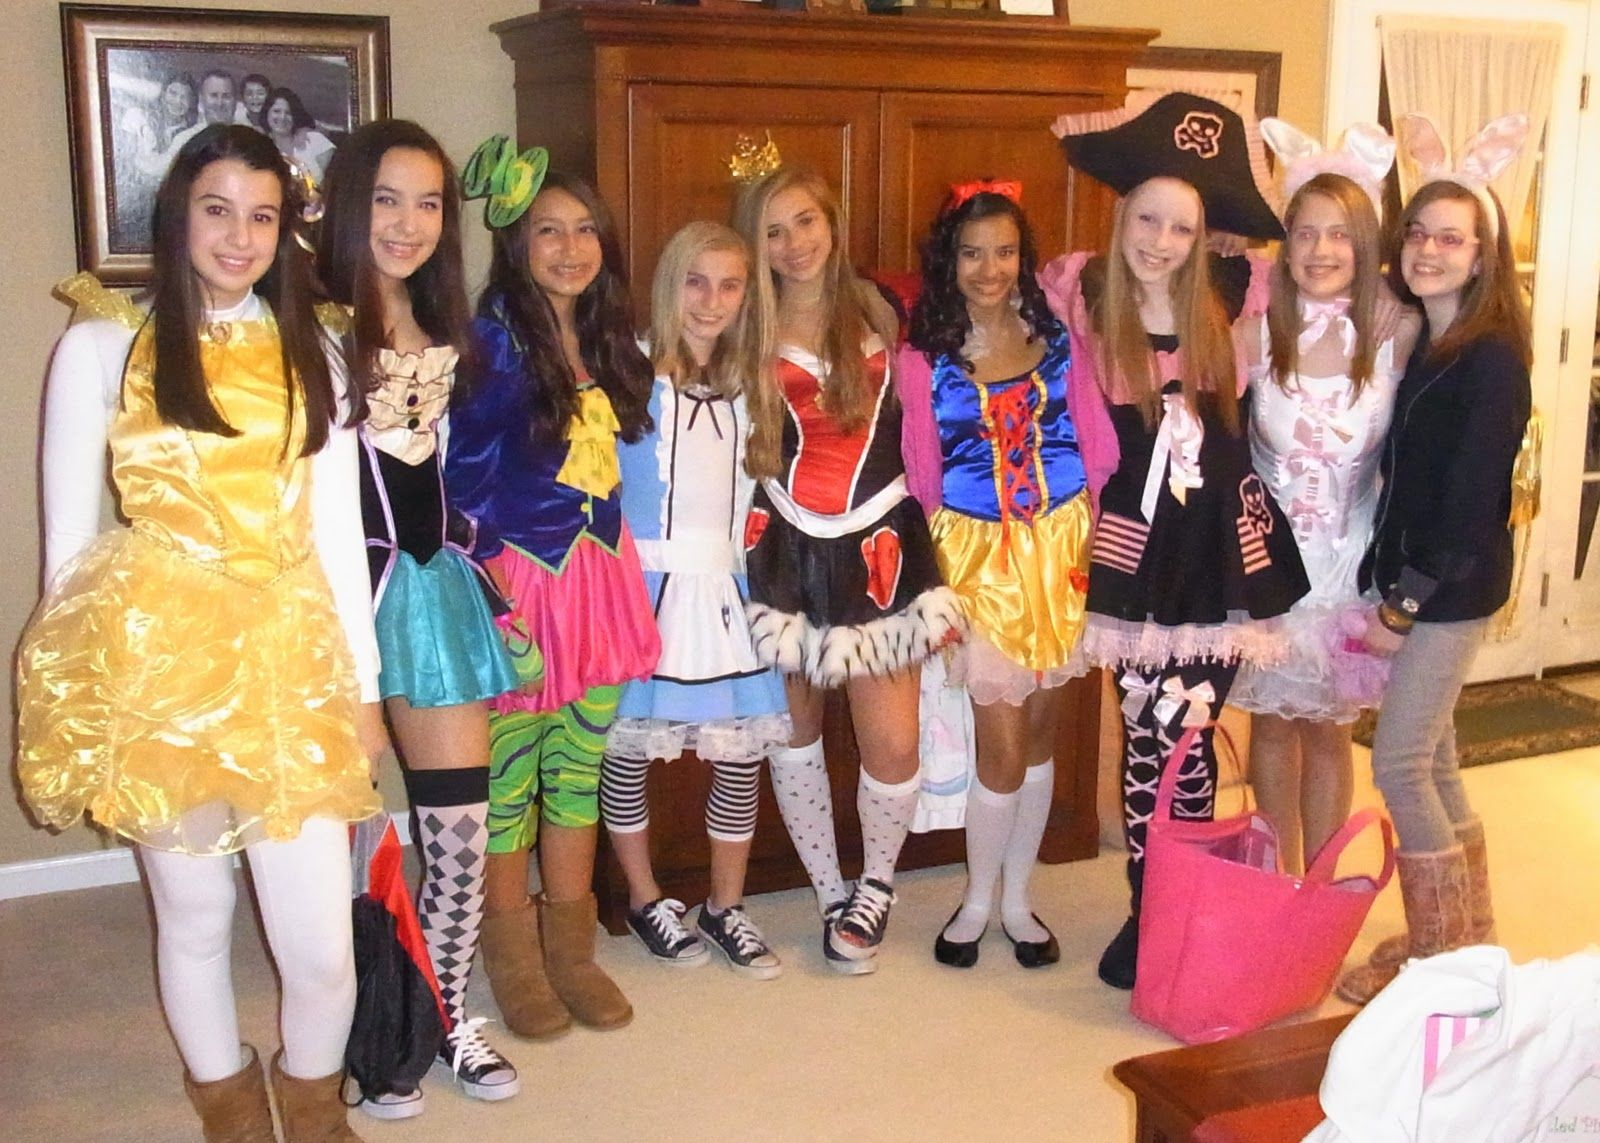 Pin by flankkks . on Cool Halloween Outfits Cool